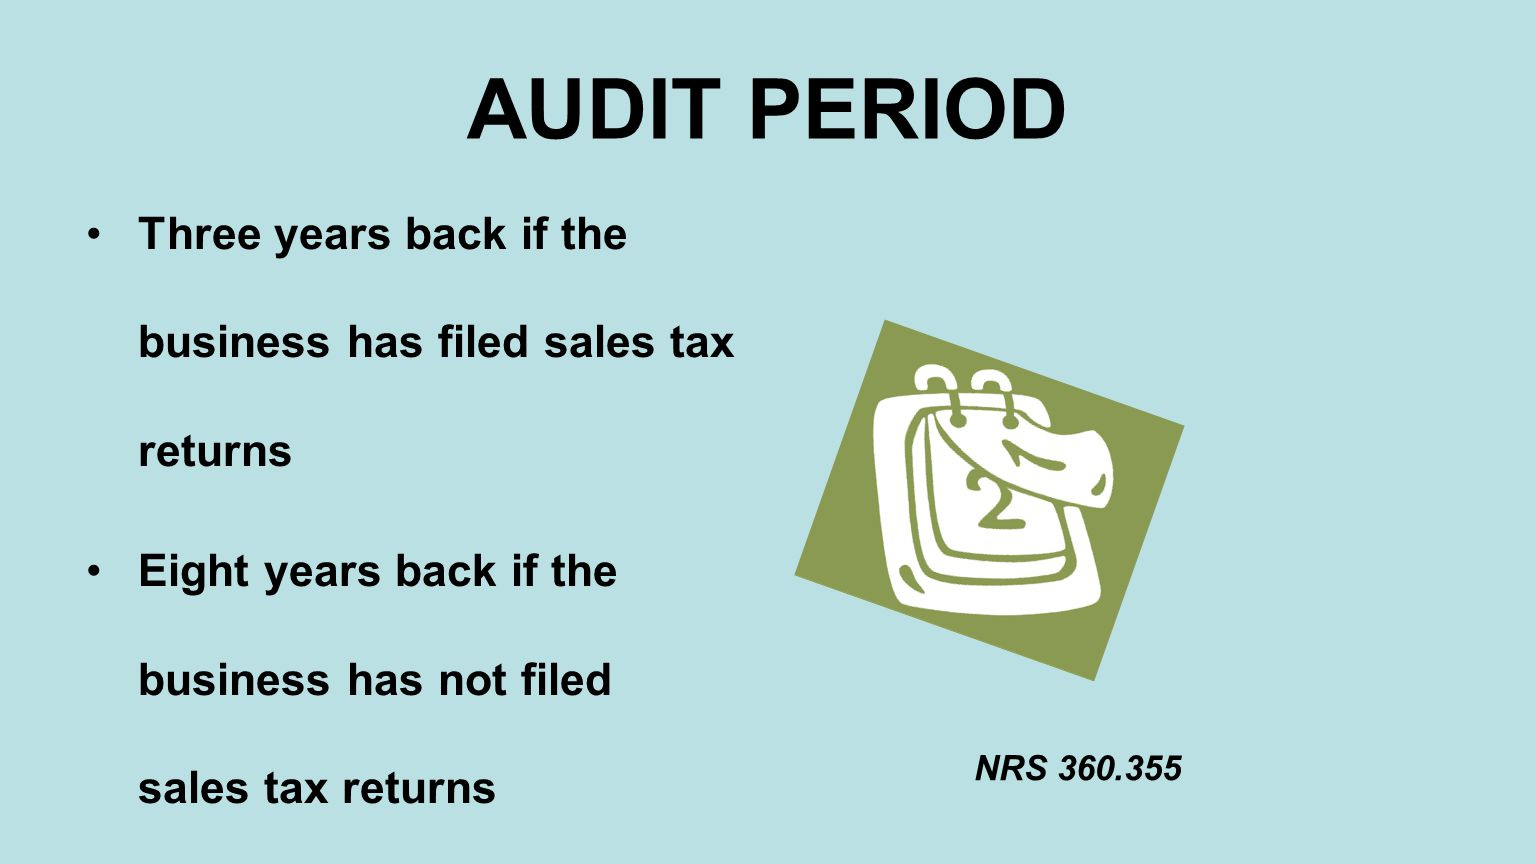 AUDIT PERIOD Three years back if the business has filed sales tax returns Eight years back if the business has not filed sales tax returns NRS 360.355